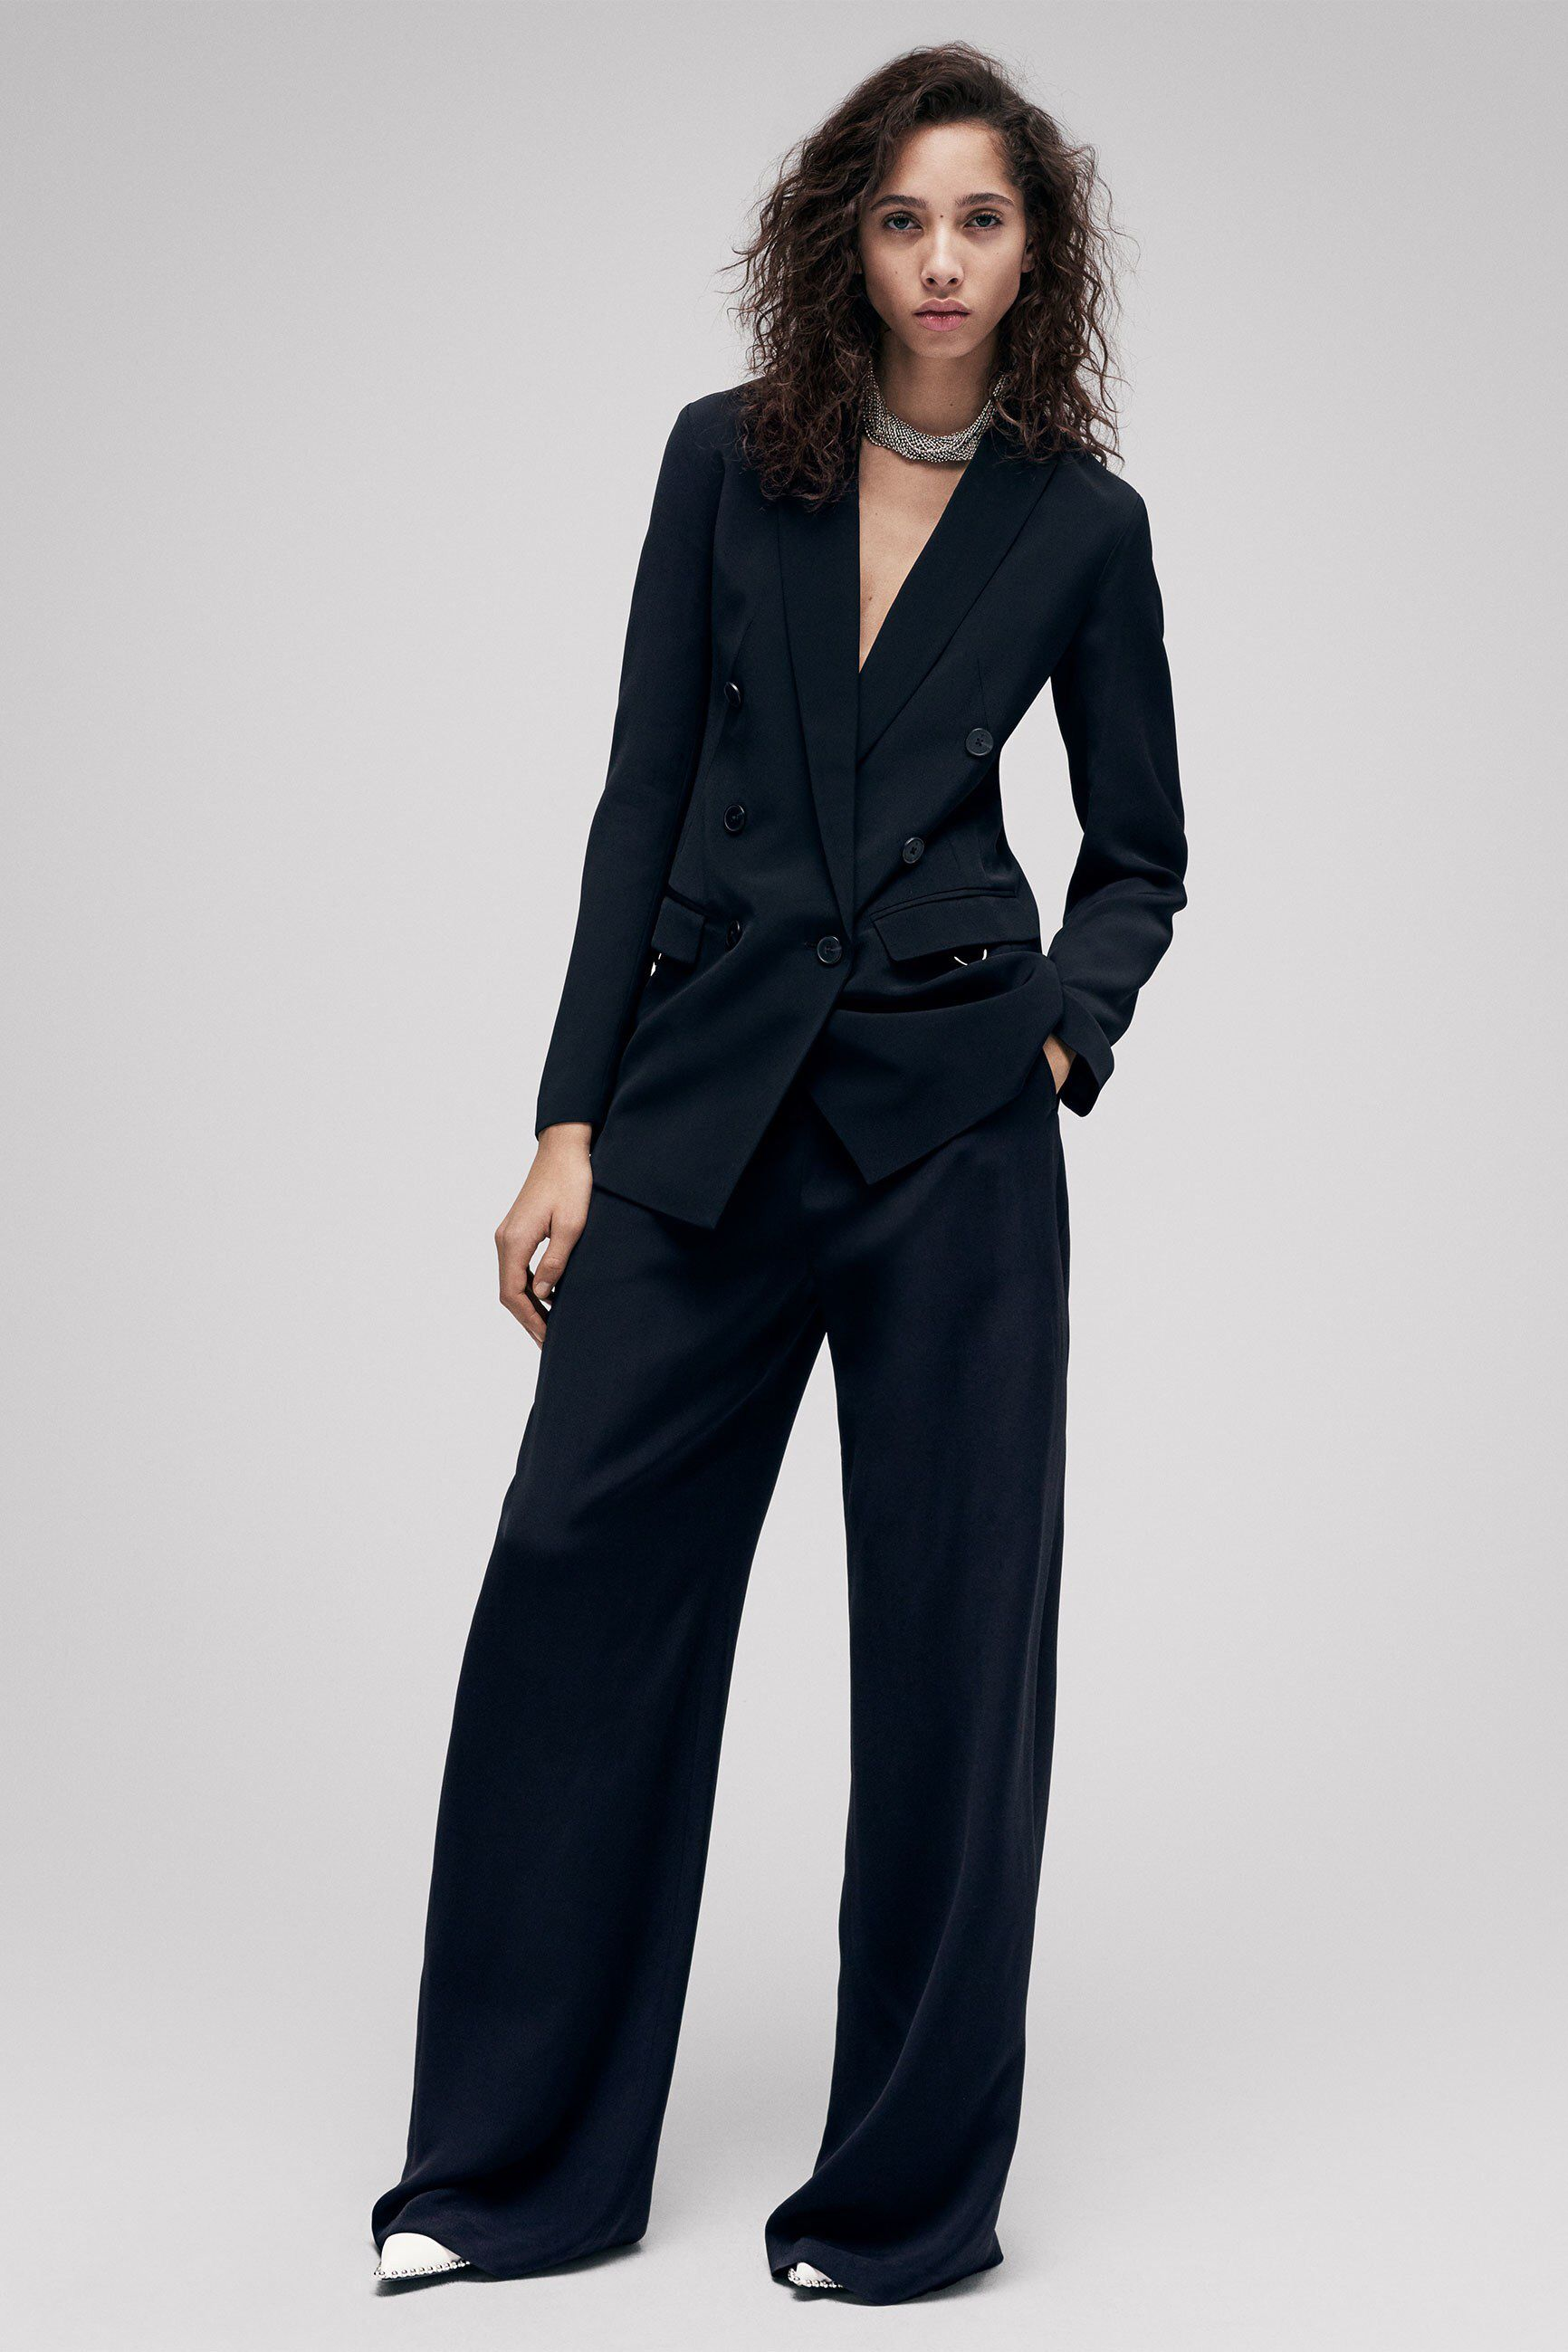 T by Alexander Wang Pre-Fall 2017 Fashion Show Collection